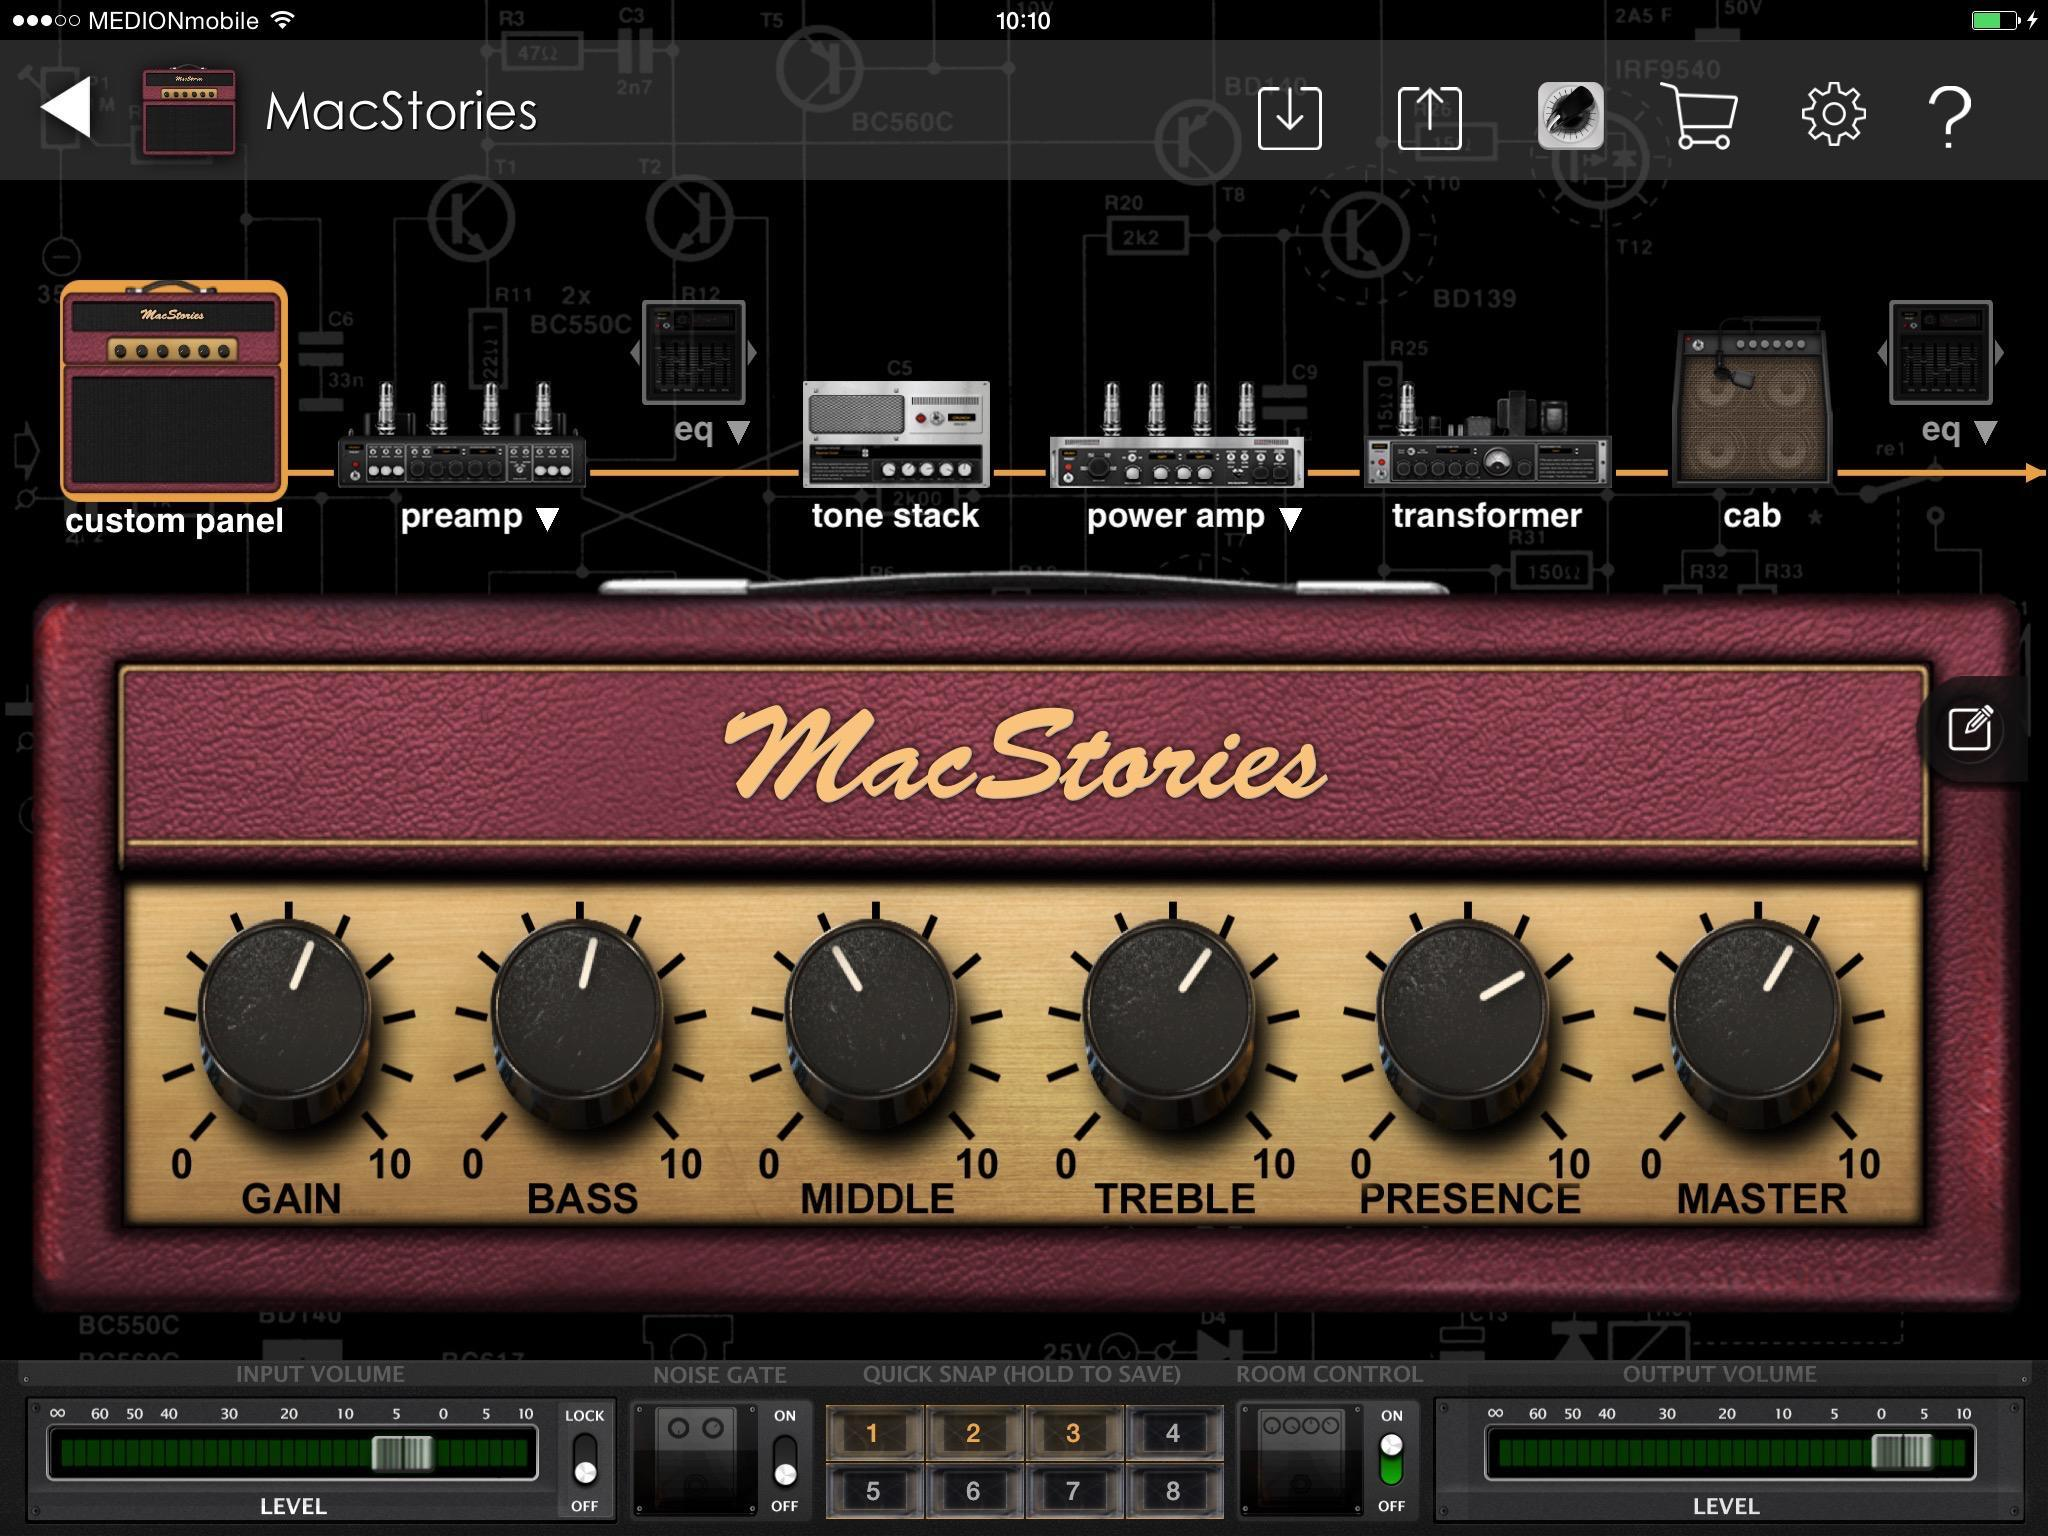 Making Music on iOS: Guitar Amps, Effects Apps & Hardware